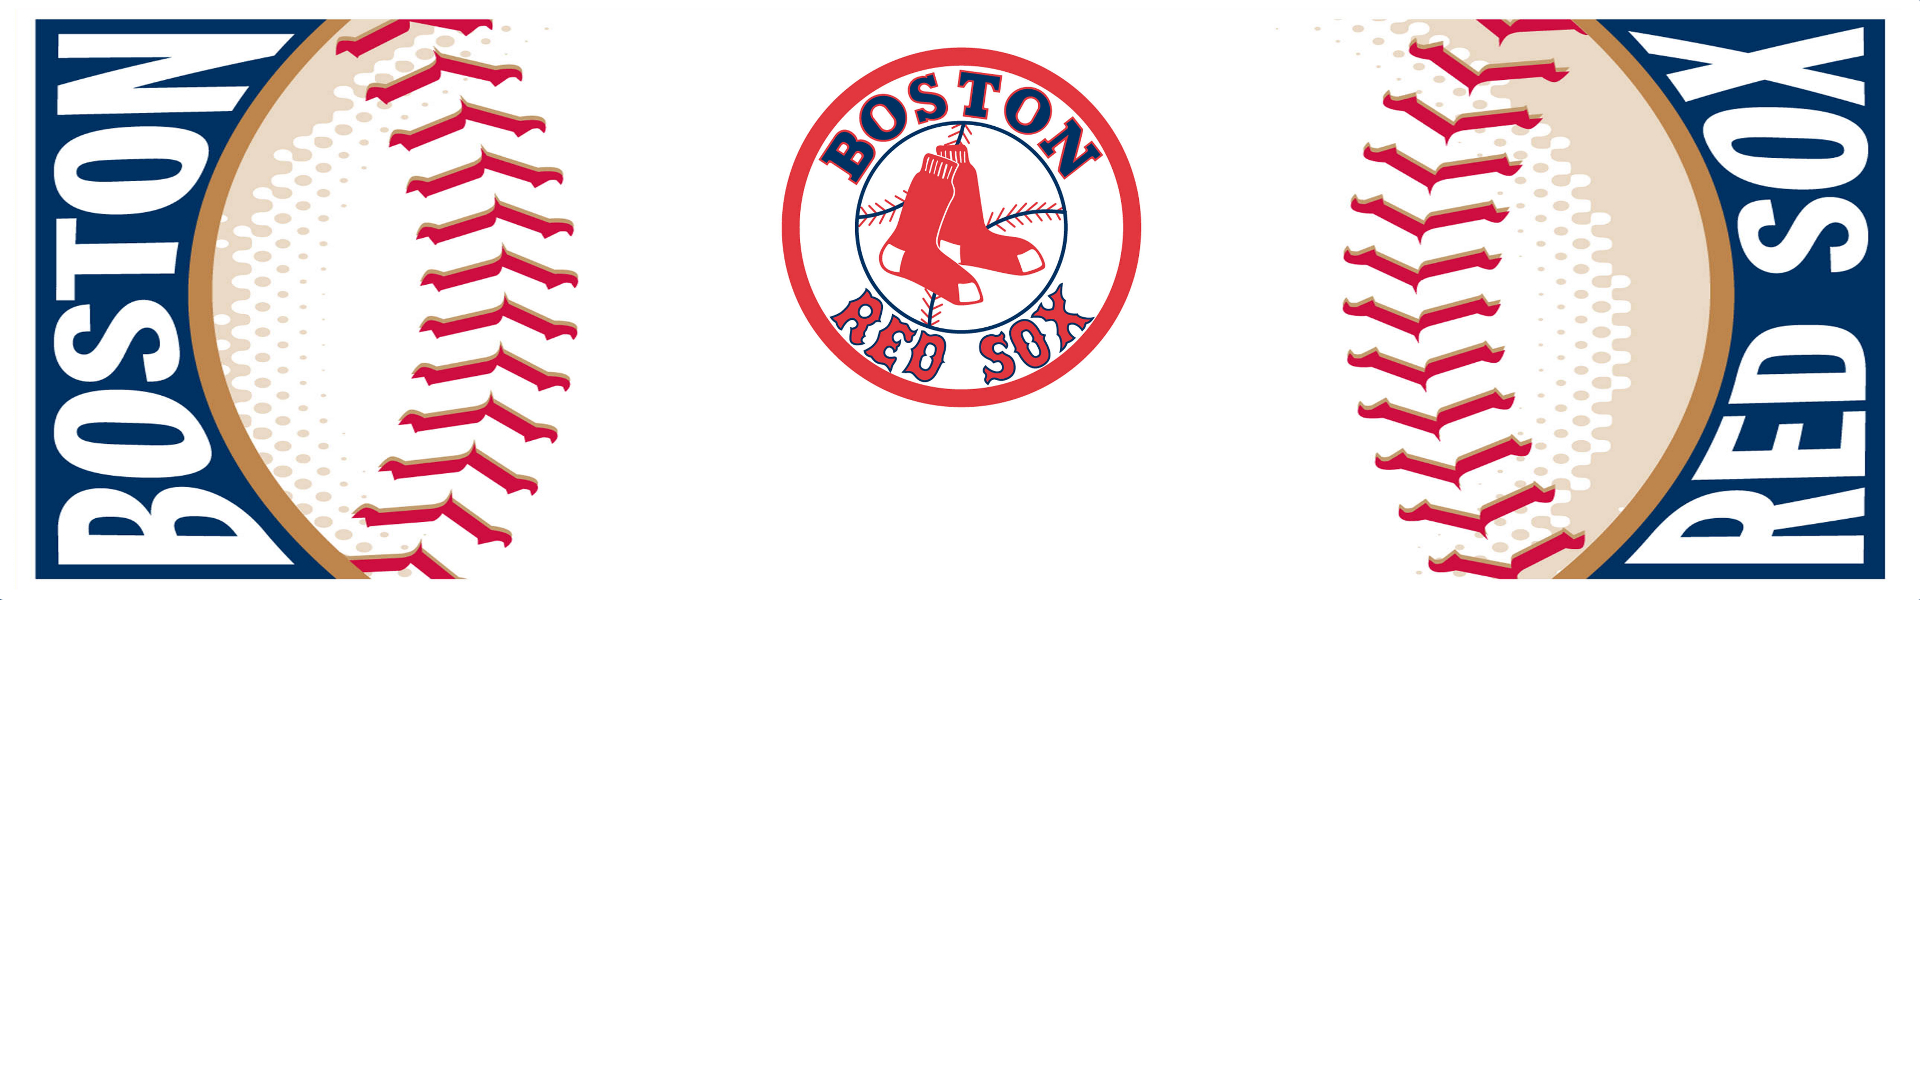 Boston Red Sox Logo Wallpaper 35437 HD Pictures | Top Wallpaper ...